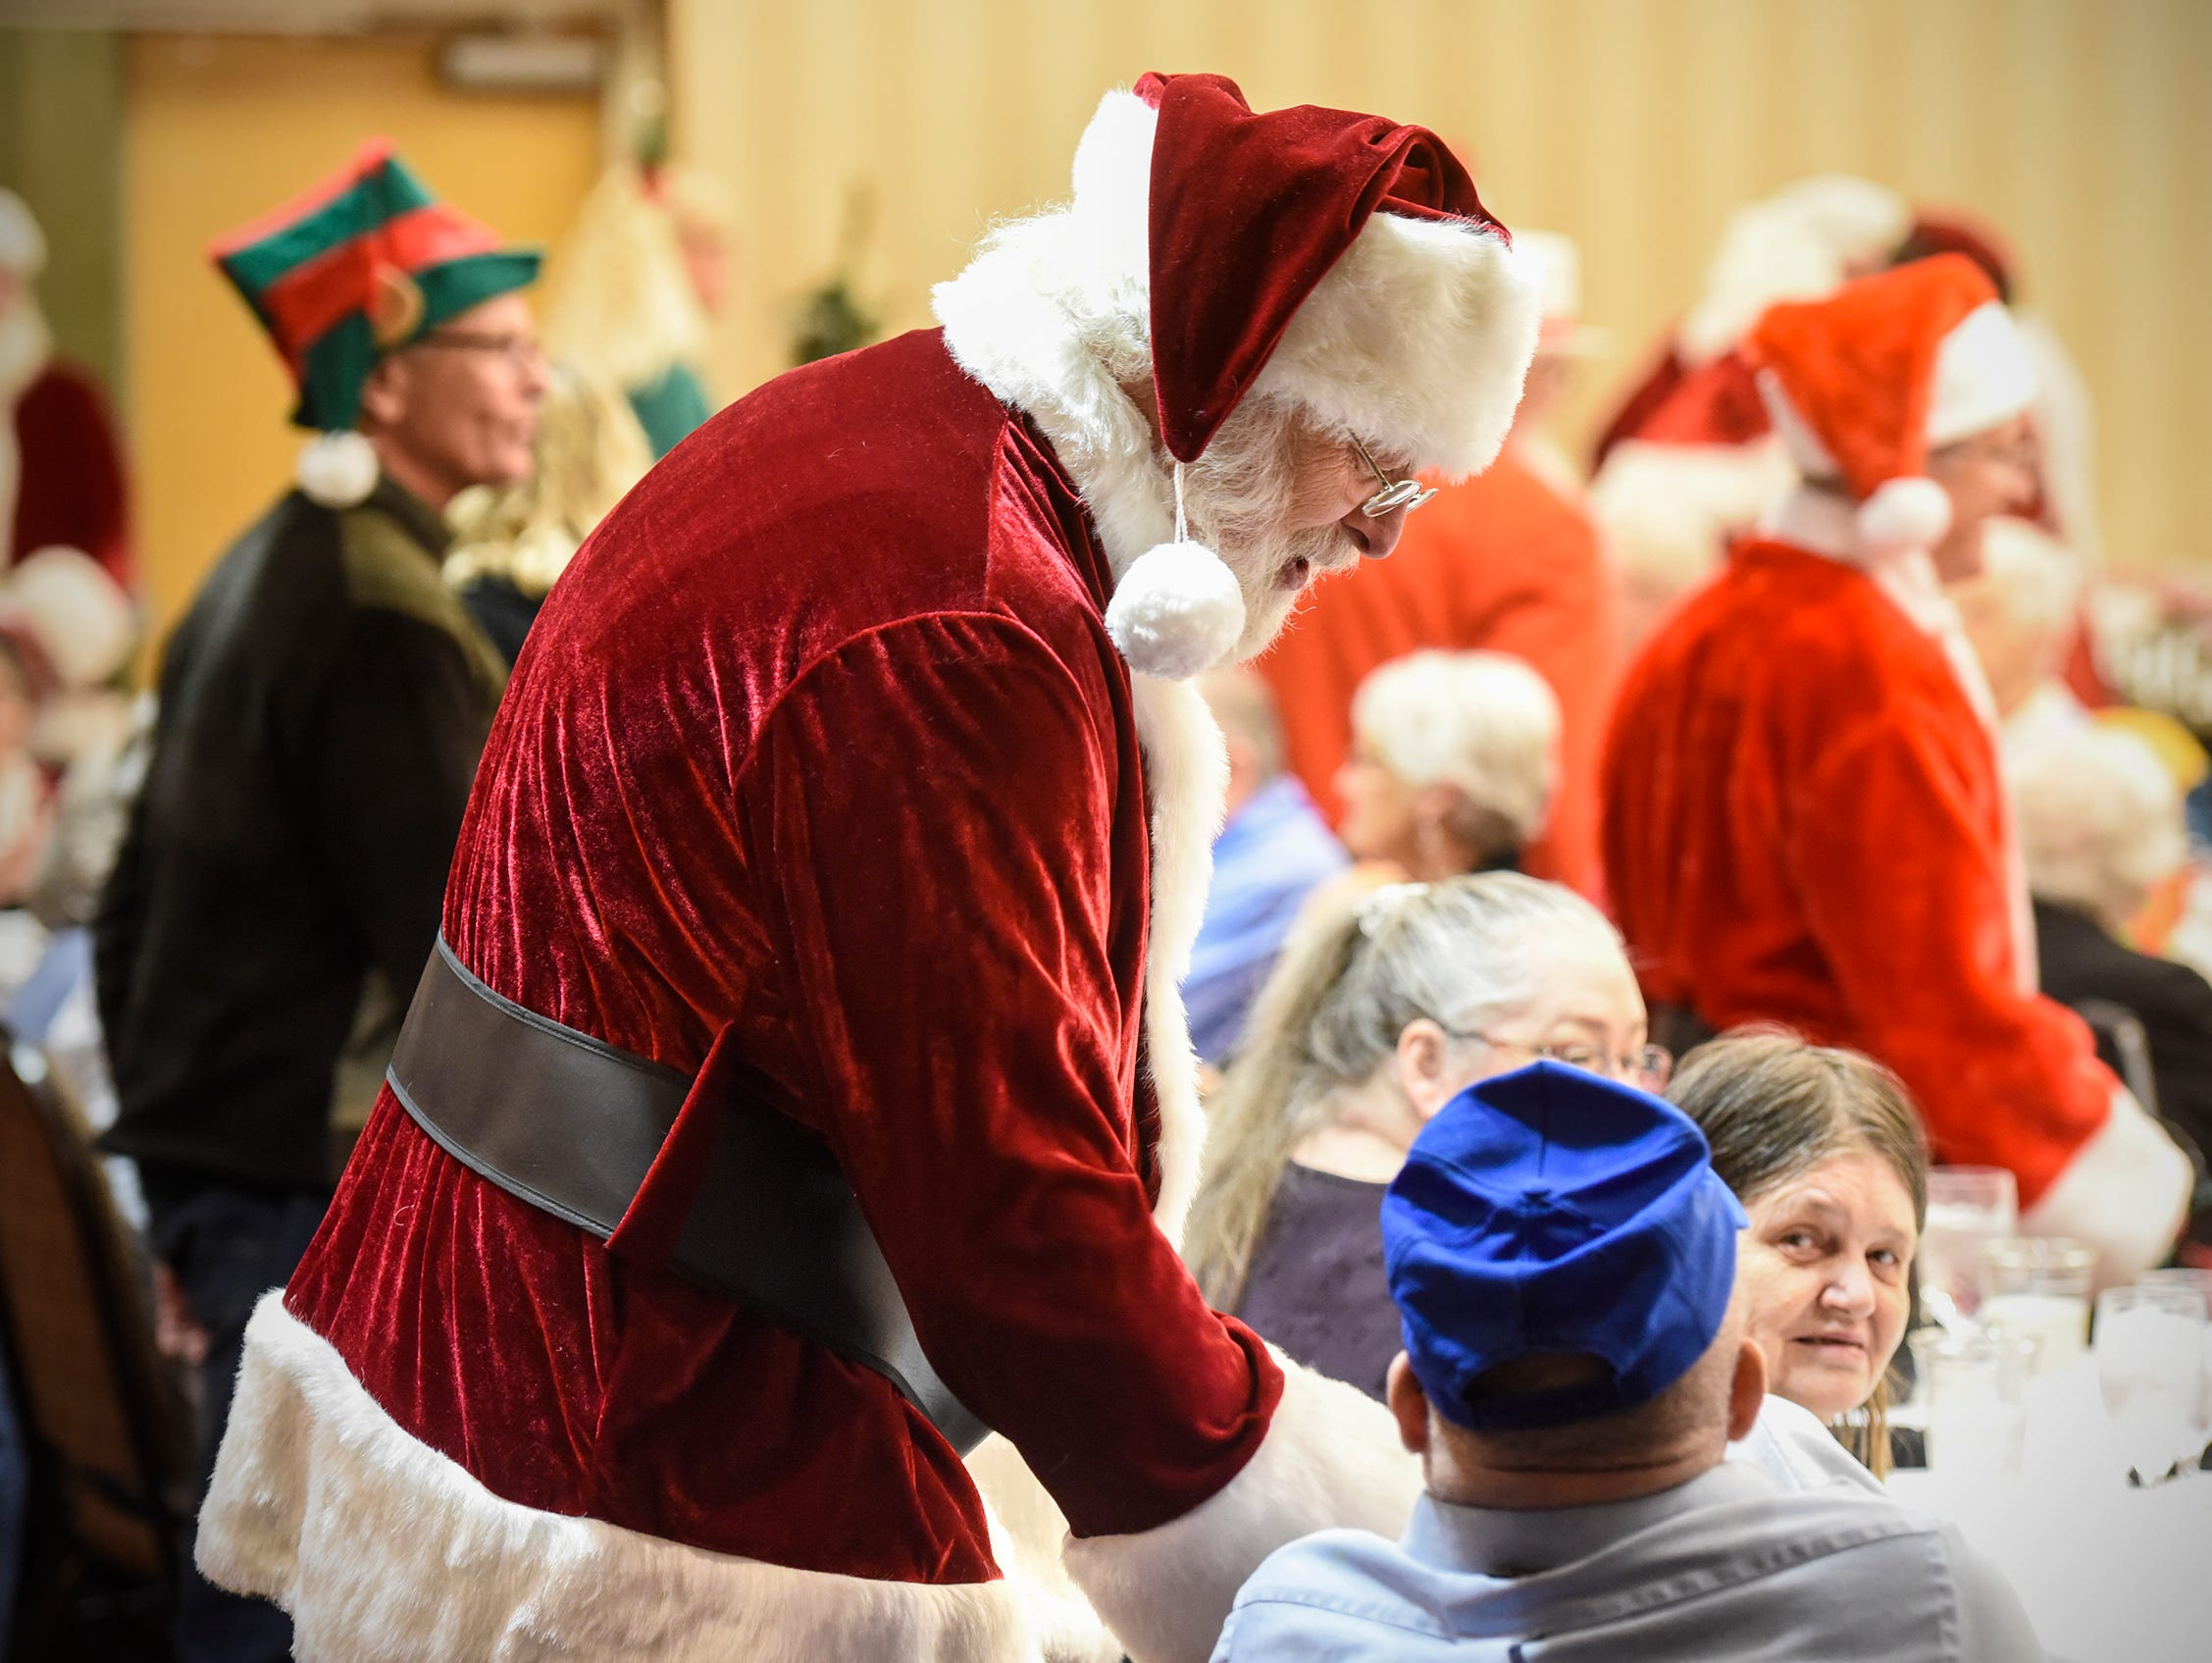 Santa smiles at residents during the Dinner with Santa event Monday, Dec. 17, in St. Cloud.